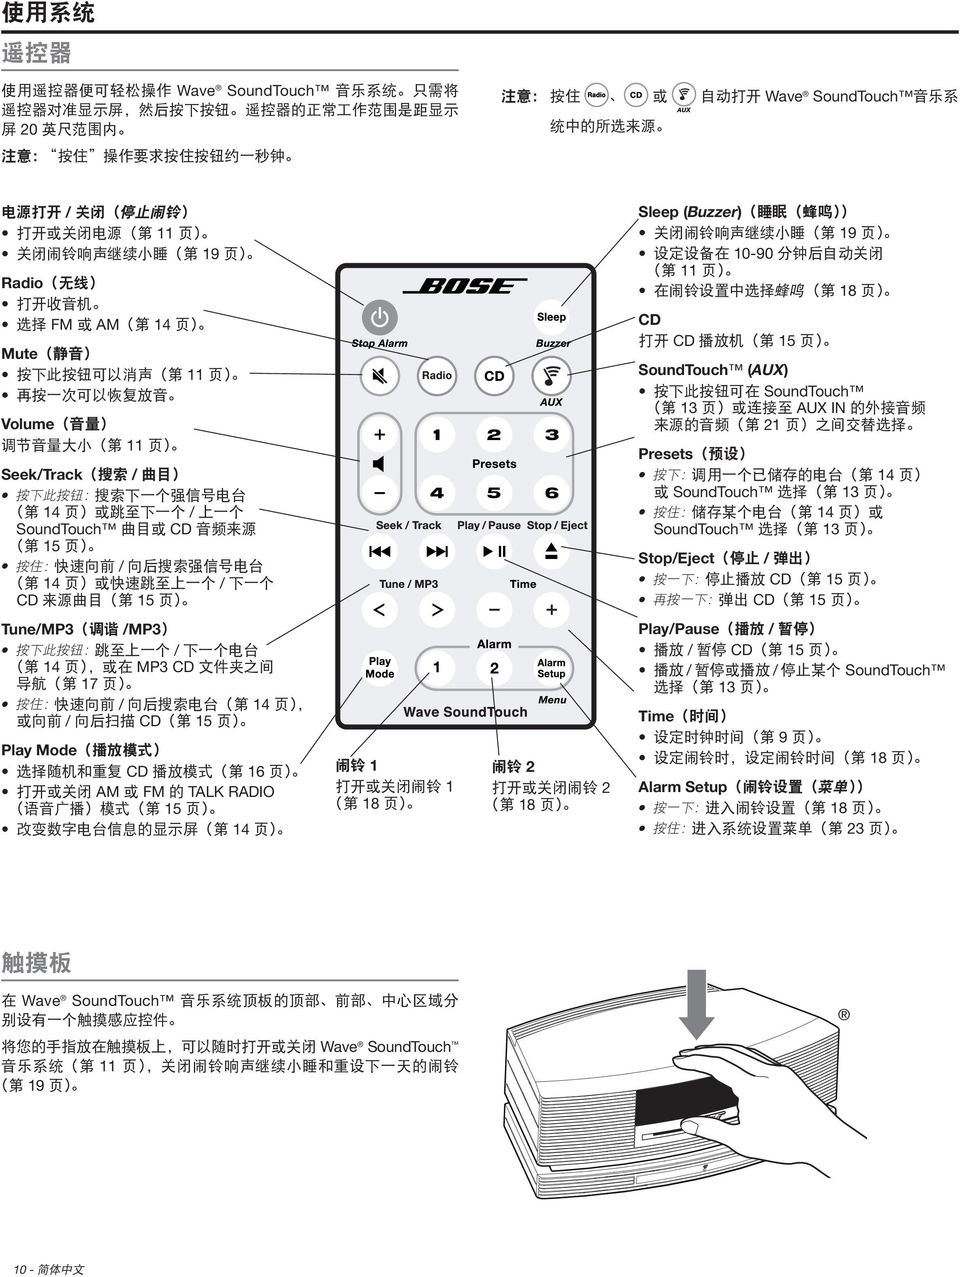 SoundTouch 13 Stop/Eject / CD 15 CD 15 Tune/MP3 /MP3 / 14 MP3 CD 17 / 14 / CD 15 Play Mode CD 16 AM FM TALK RADIO 15